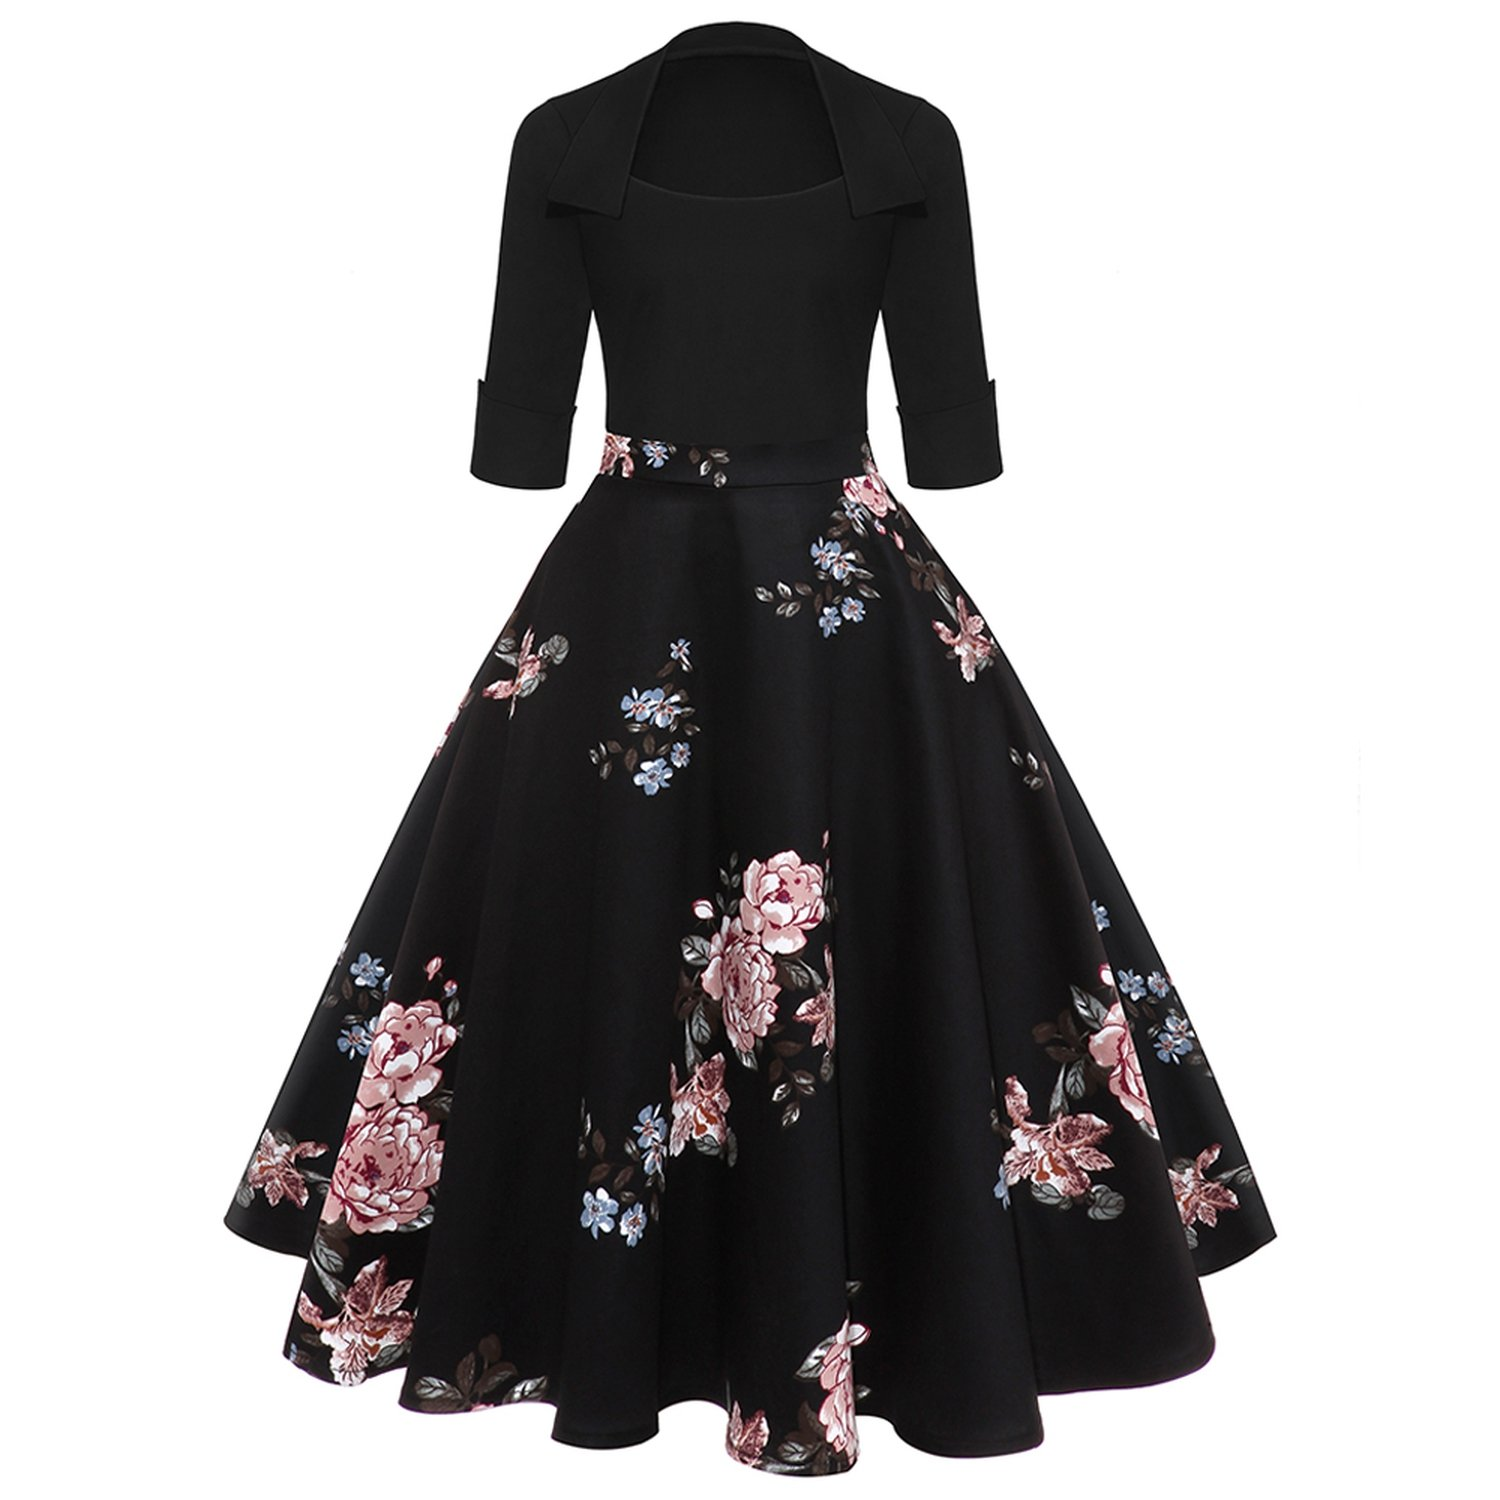 Print High Waist Vintage Dress Women New 2018 Spring Rockabilly Patchwork Swing A-Line Dresses at Amazon Womens Clothing store: